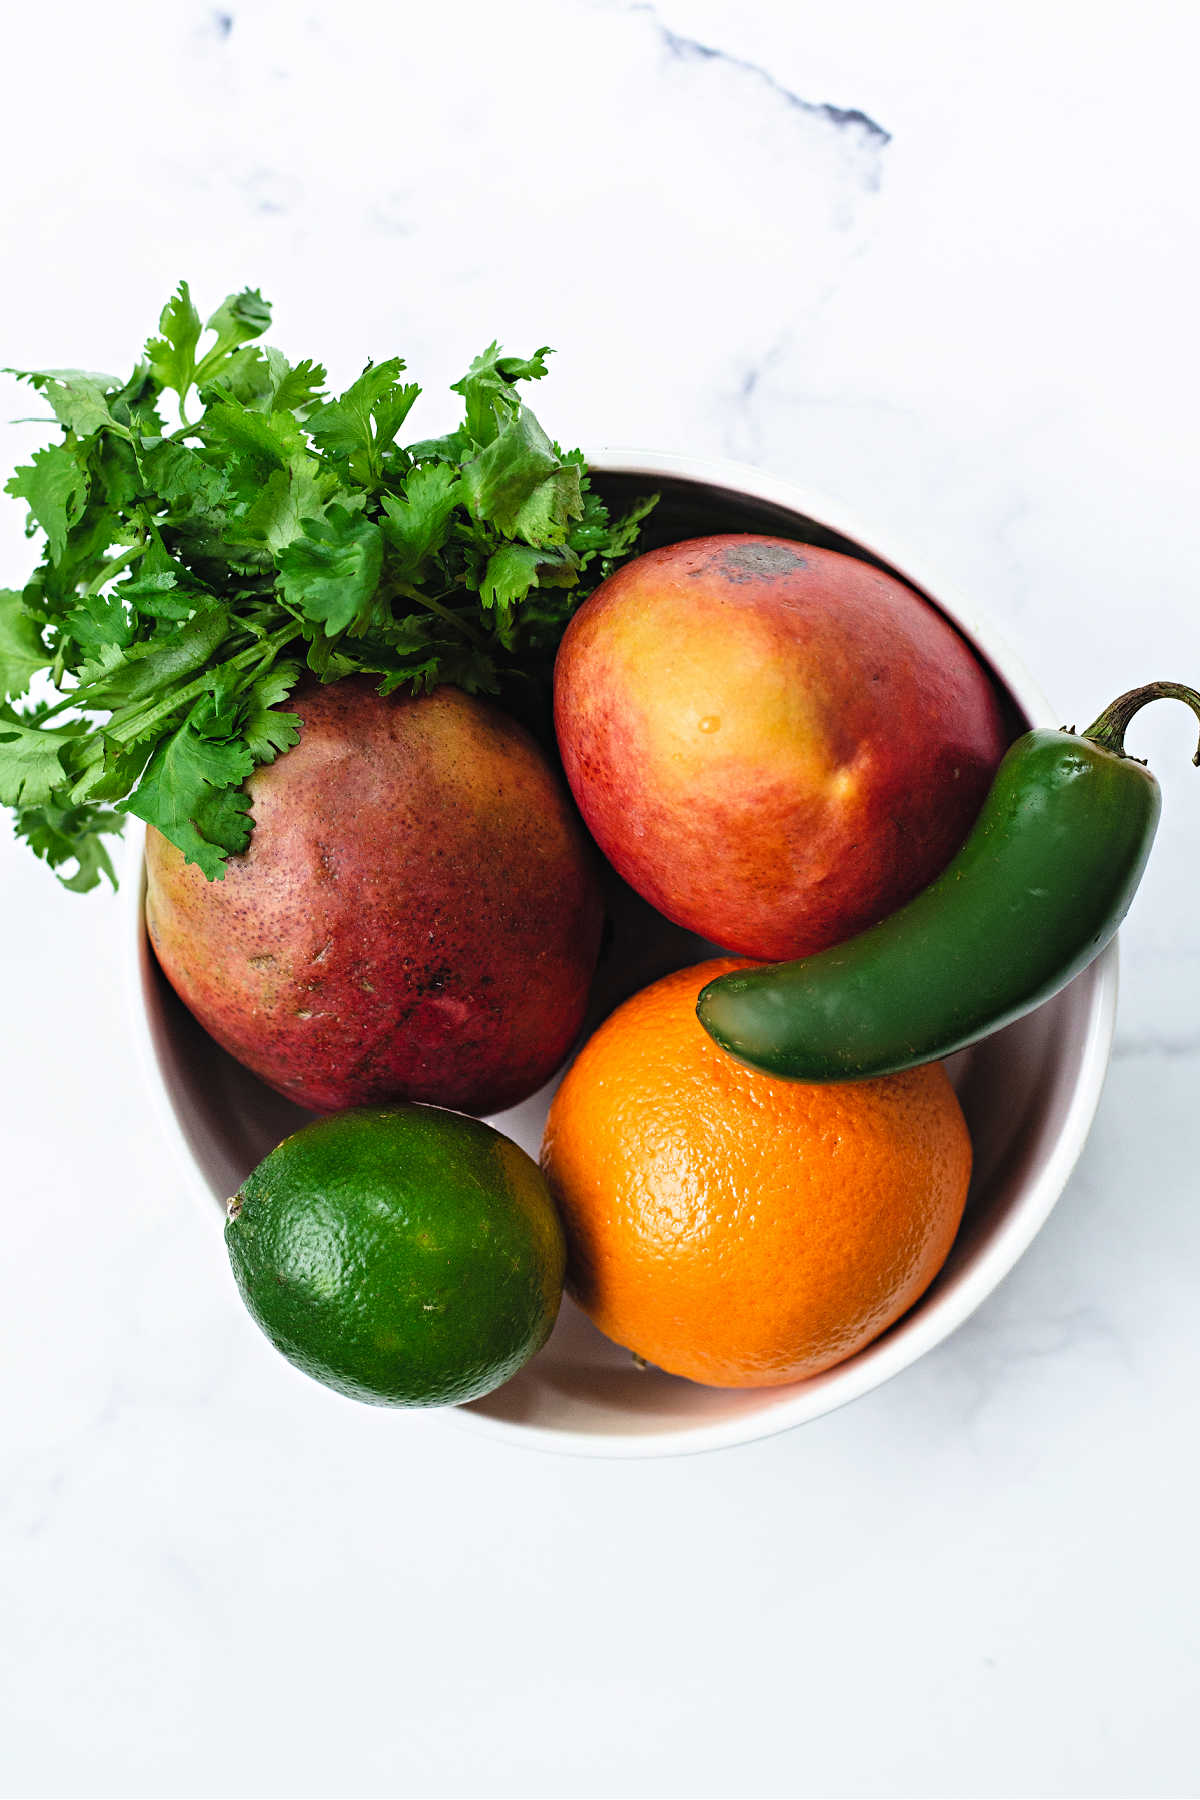 a bowl containing 2 mangos, an orange, a jalapeno pepper, and a bunch of cilantro on a table.